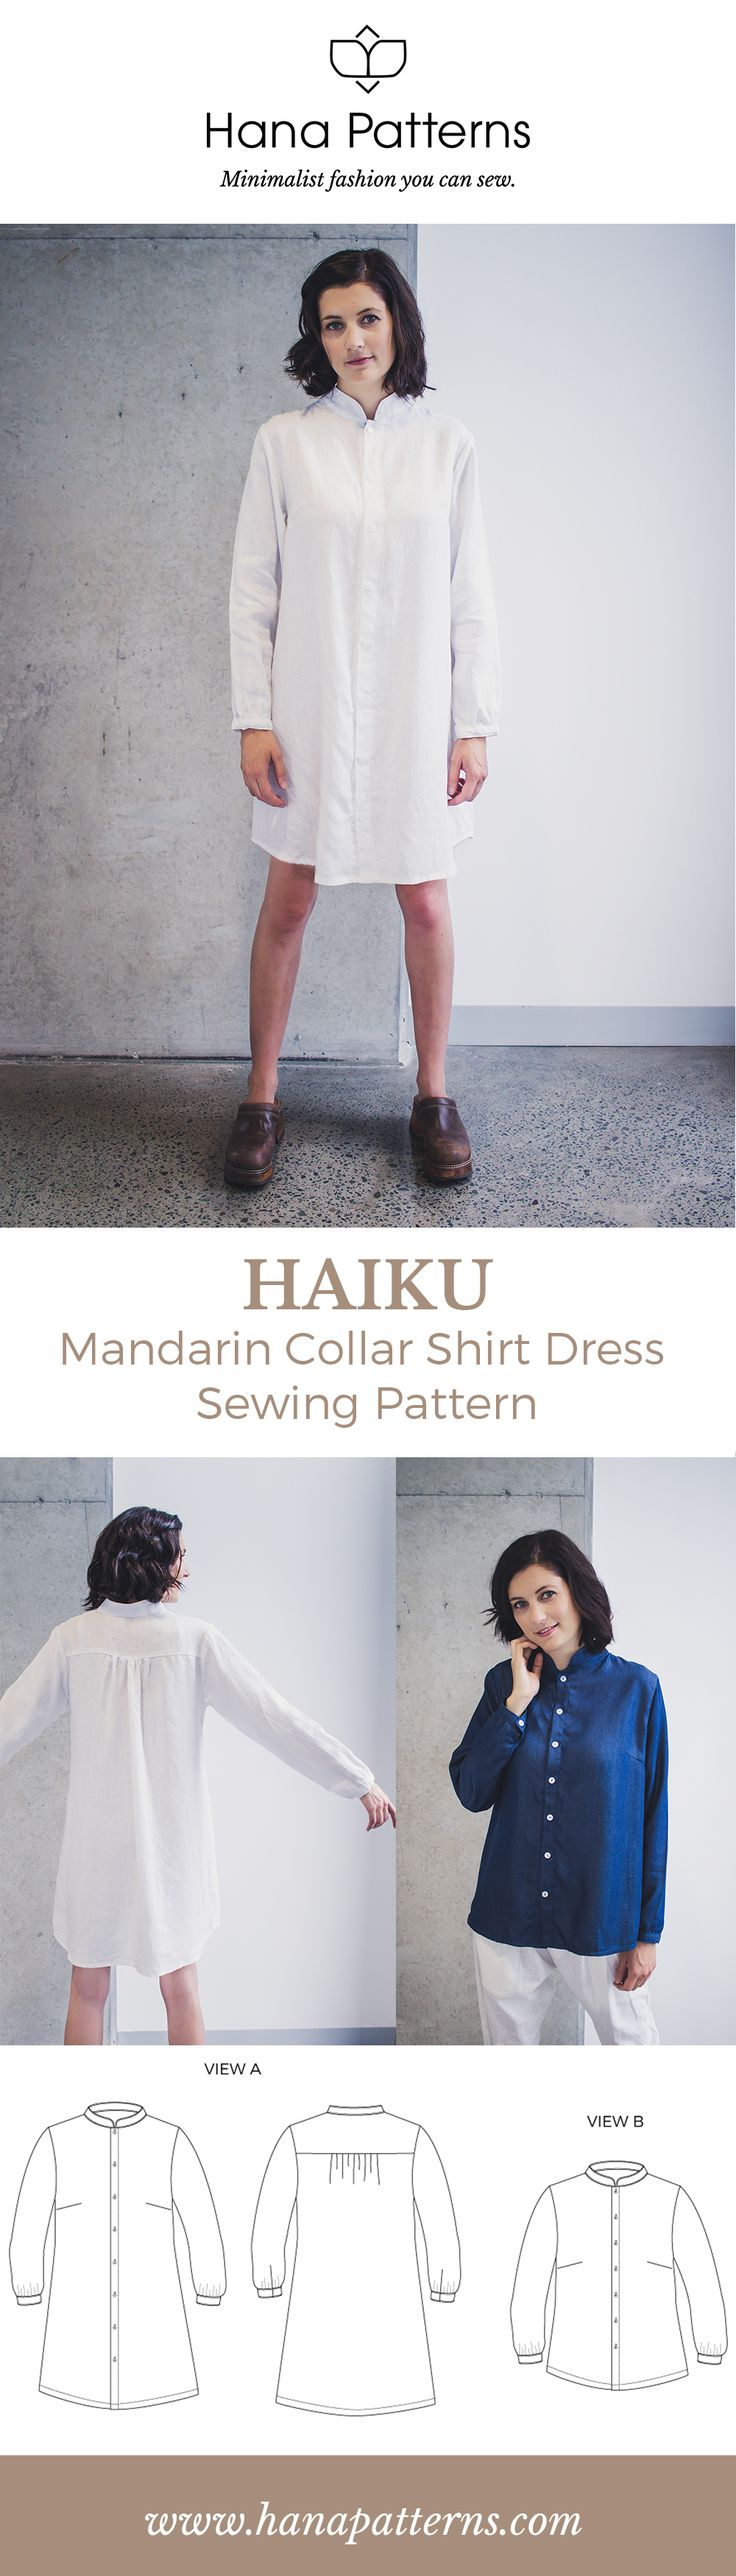 PDF Sewing Patterns for Women   HAIKU Mandarin Collar Shirt Dress   Add a touch of modern Asian style to your handmade wardrobe. Make it in linen for understated elegance and choose chambray for casual chic. Find out more at www.hanapatterns.com